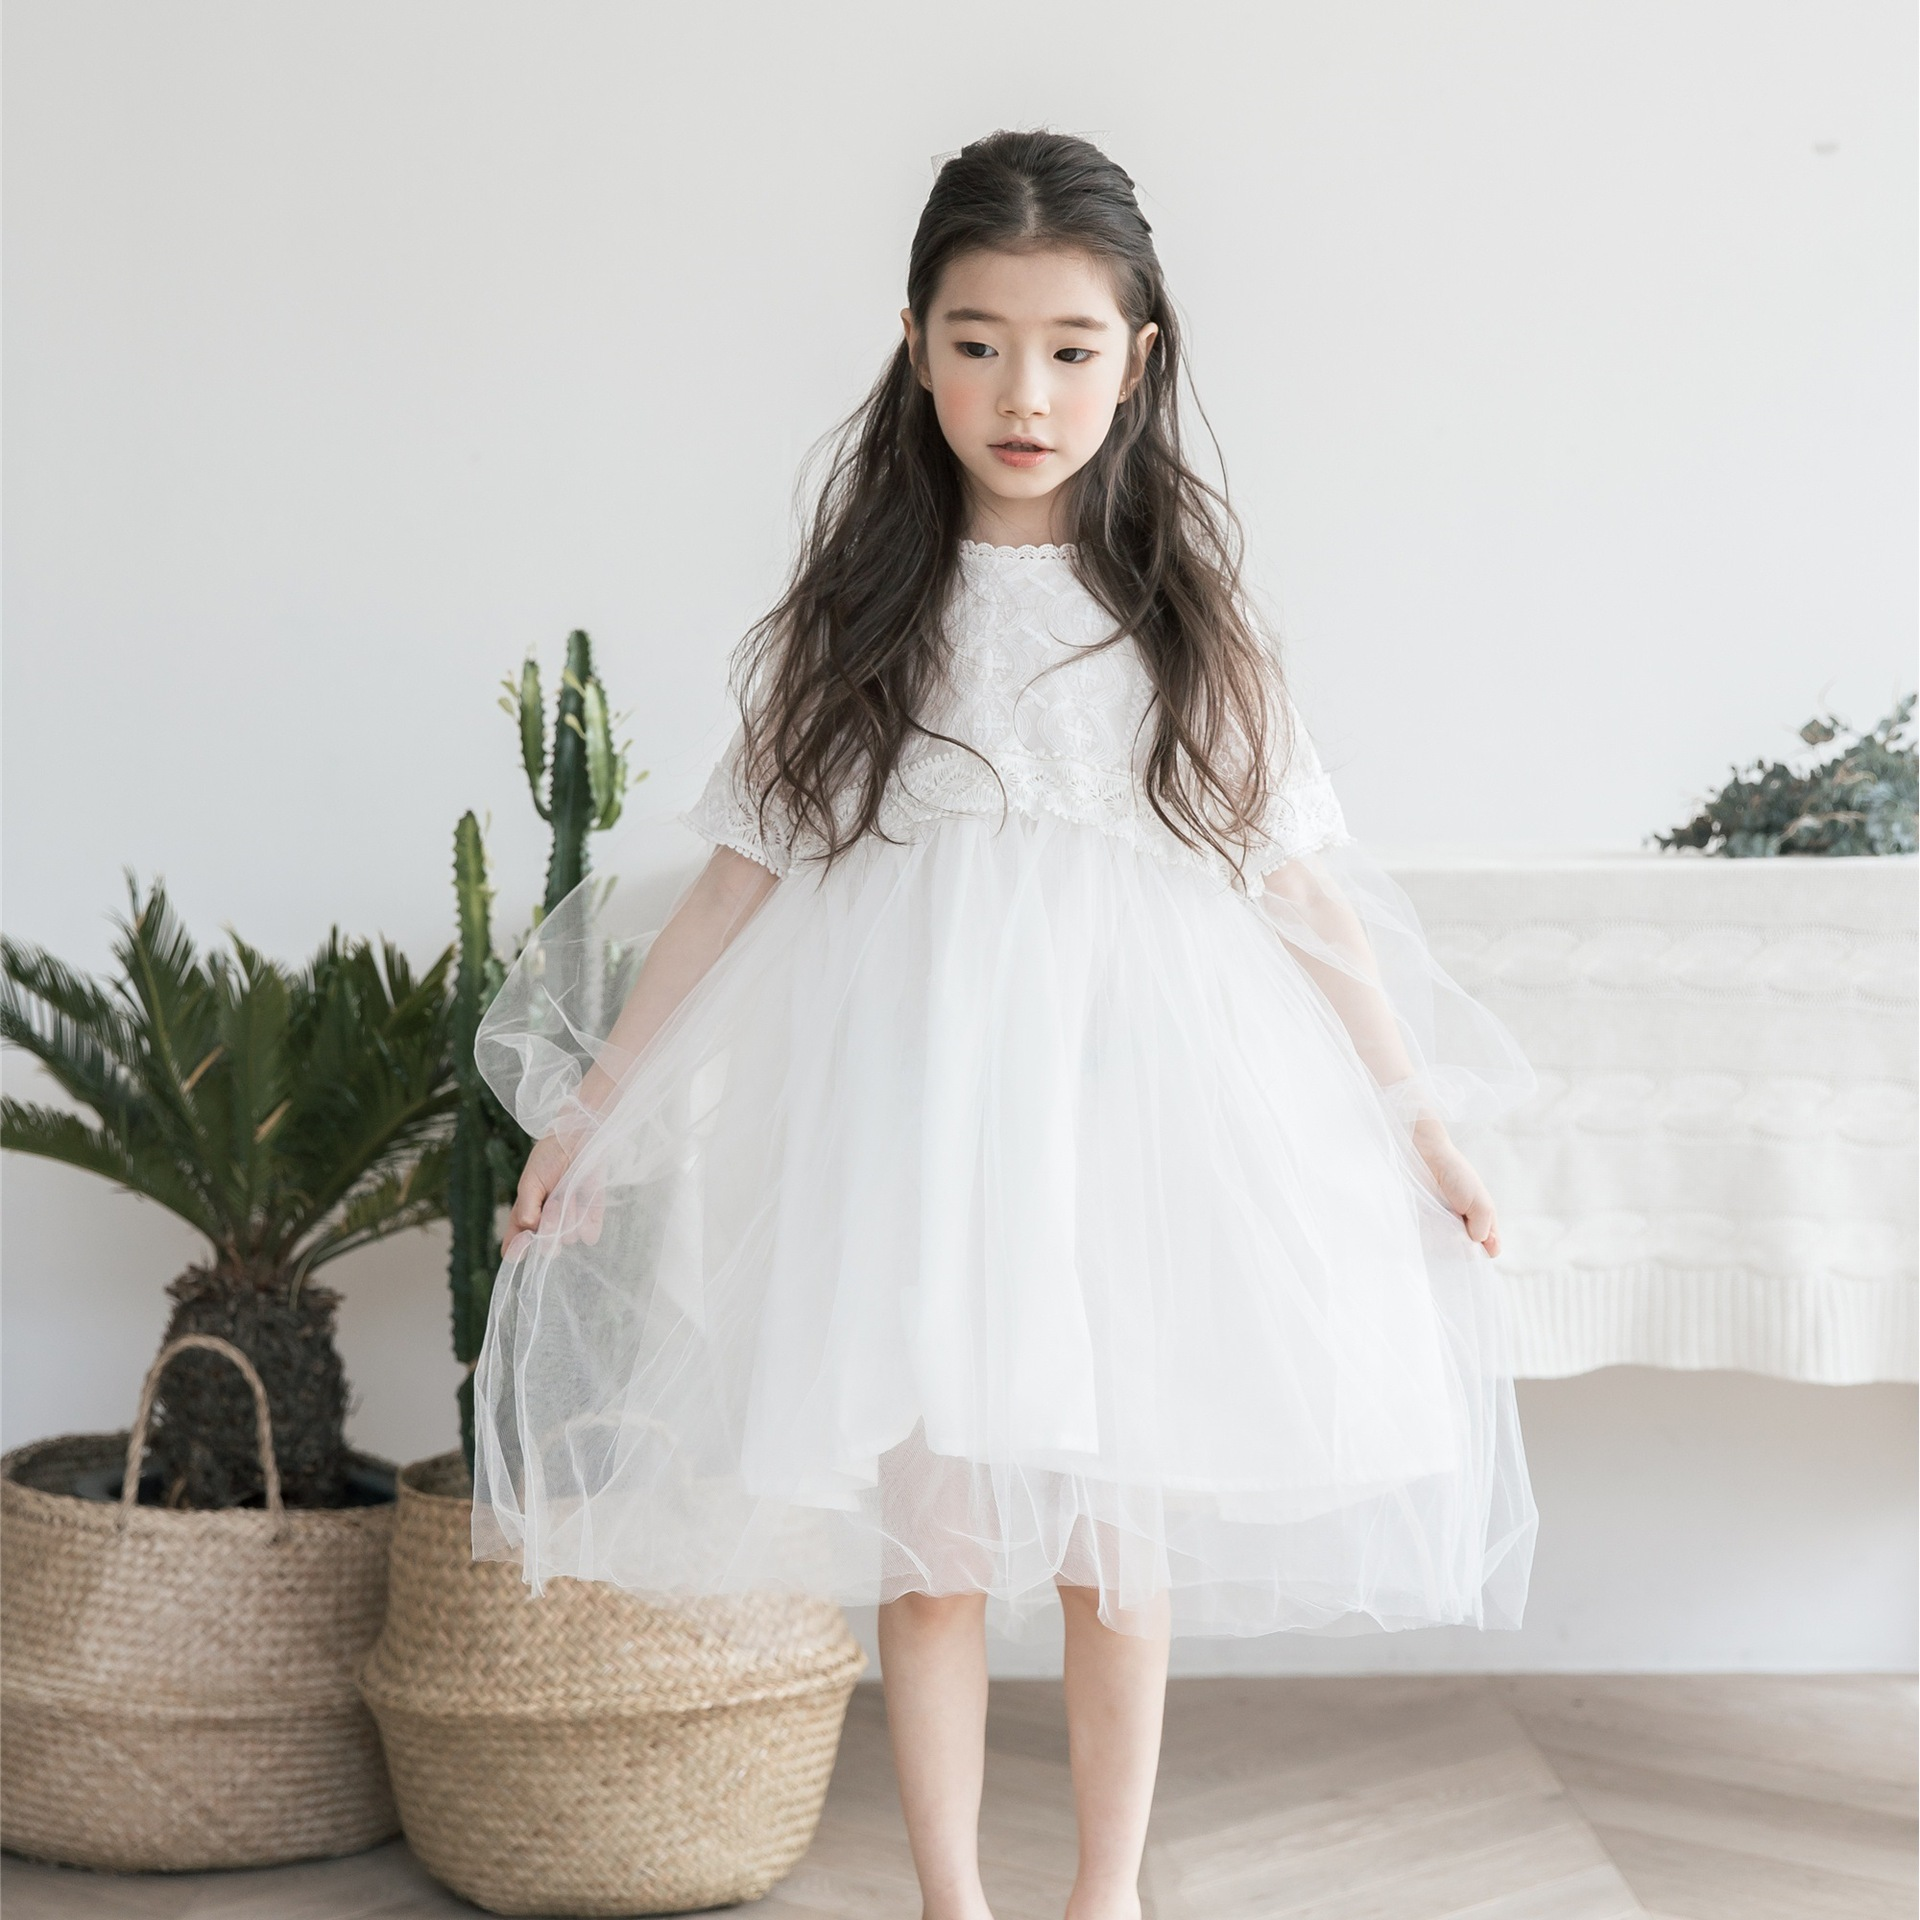 new 2018 girl party dress for kids clothes lace girl tutu dresses mesh sleeve teenagers princess dress suit 3~10 age girls dress star dress for girl european style bow tutu dress long sleeve mesh girls dresses leisure holiday kids clothes pink black